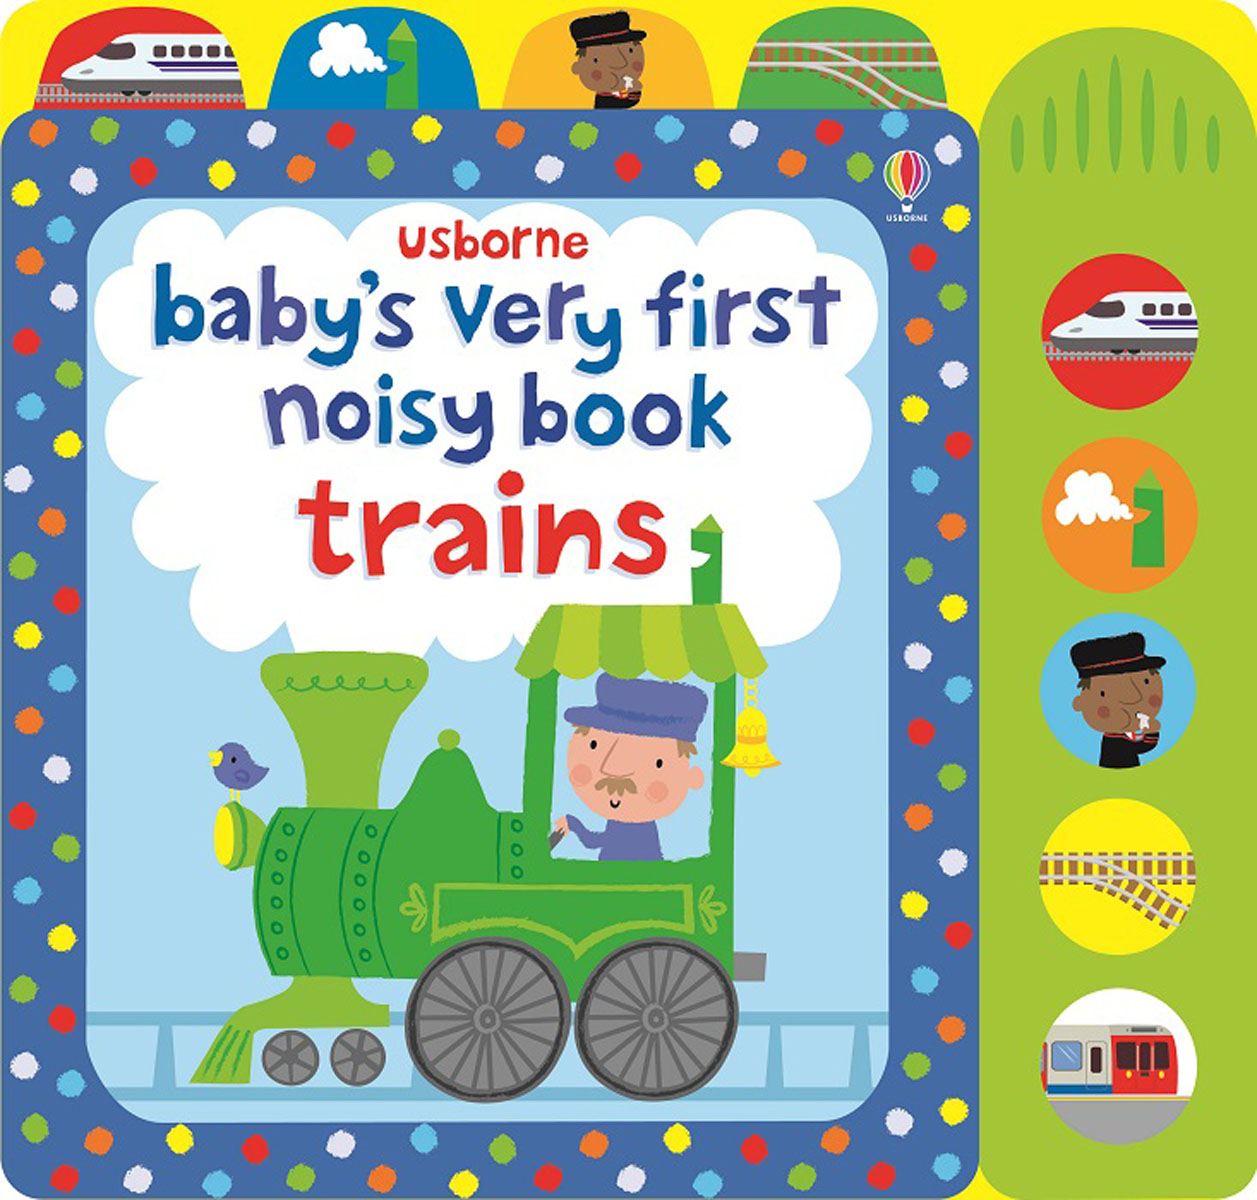 Baby's very first noisy book train seeing things as they are